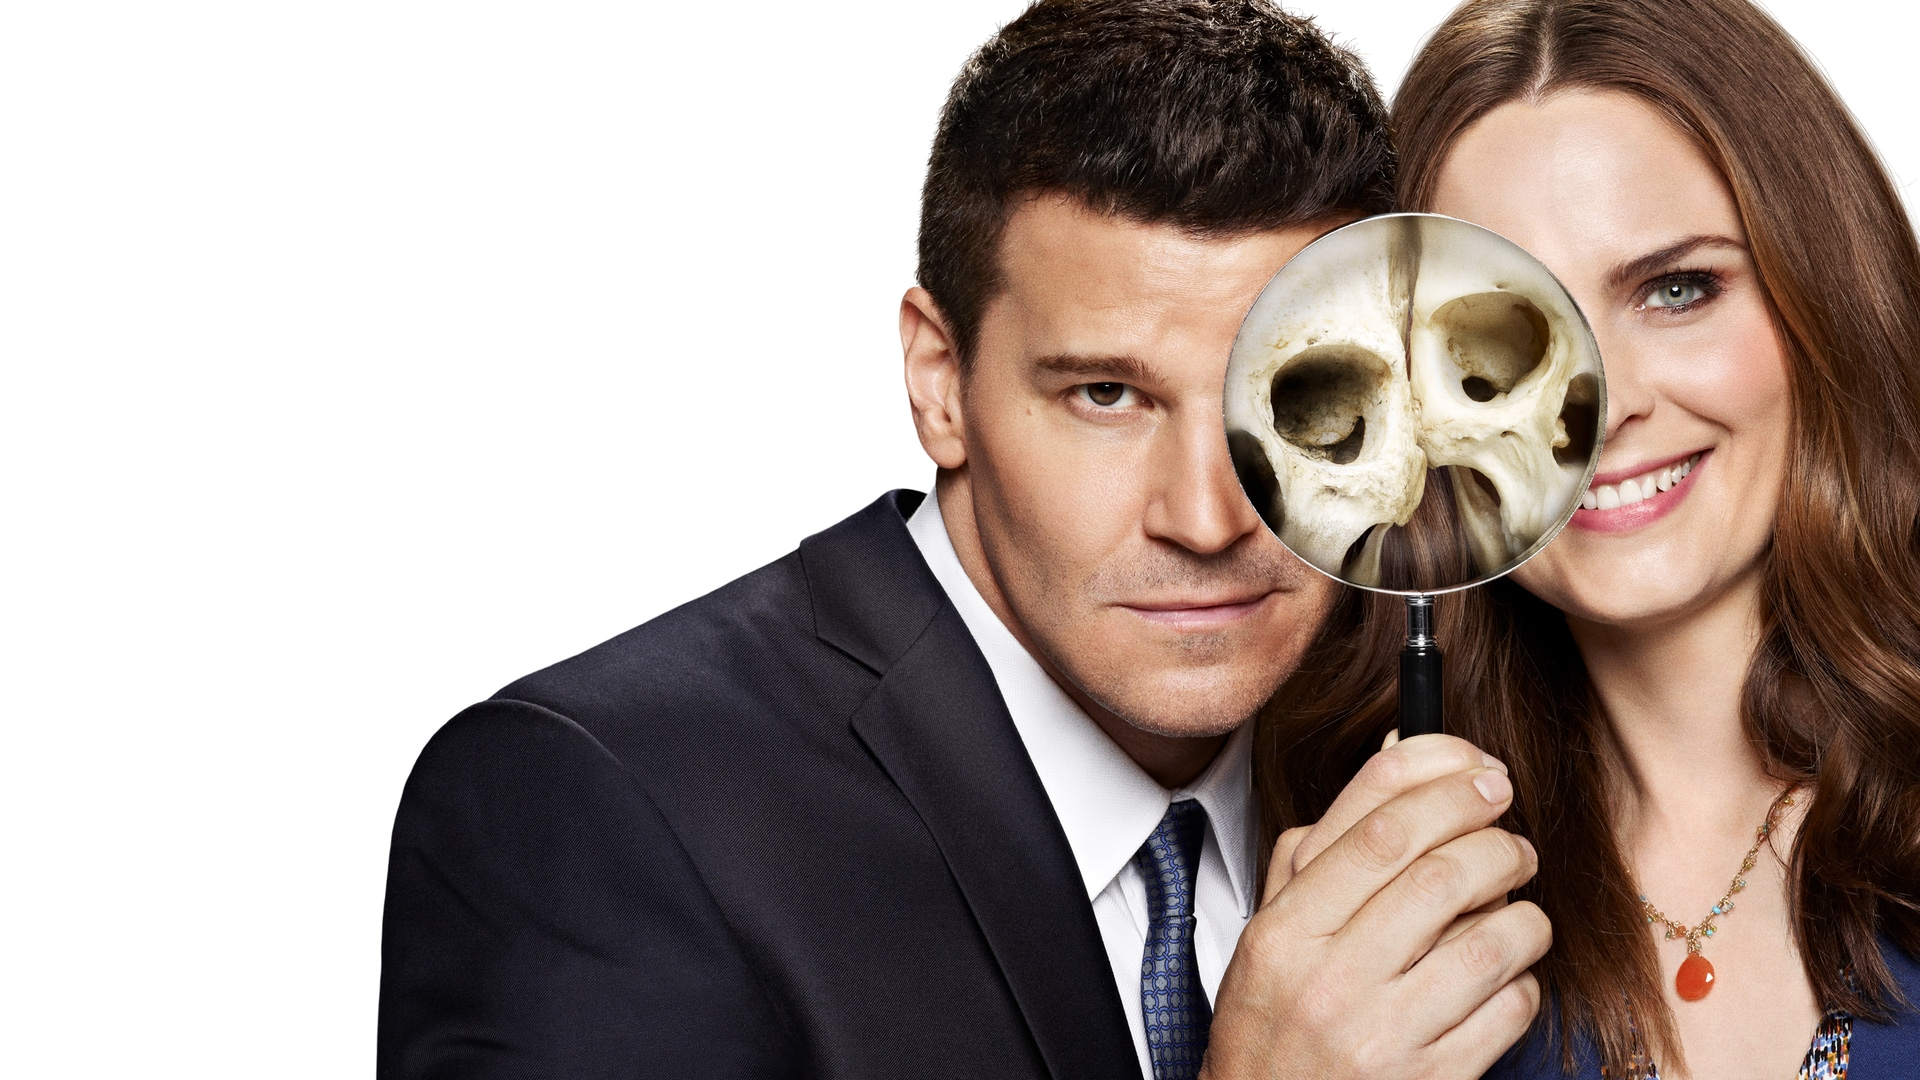 Bones | Watch Full Episodes Online on FOX